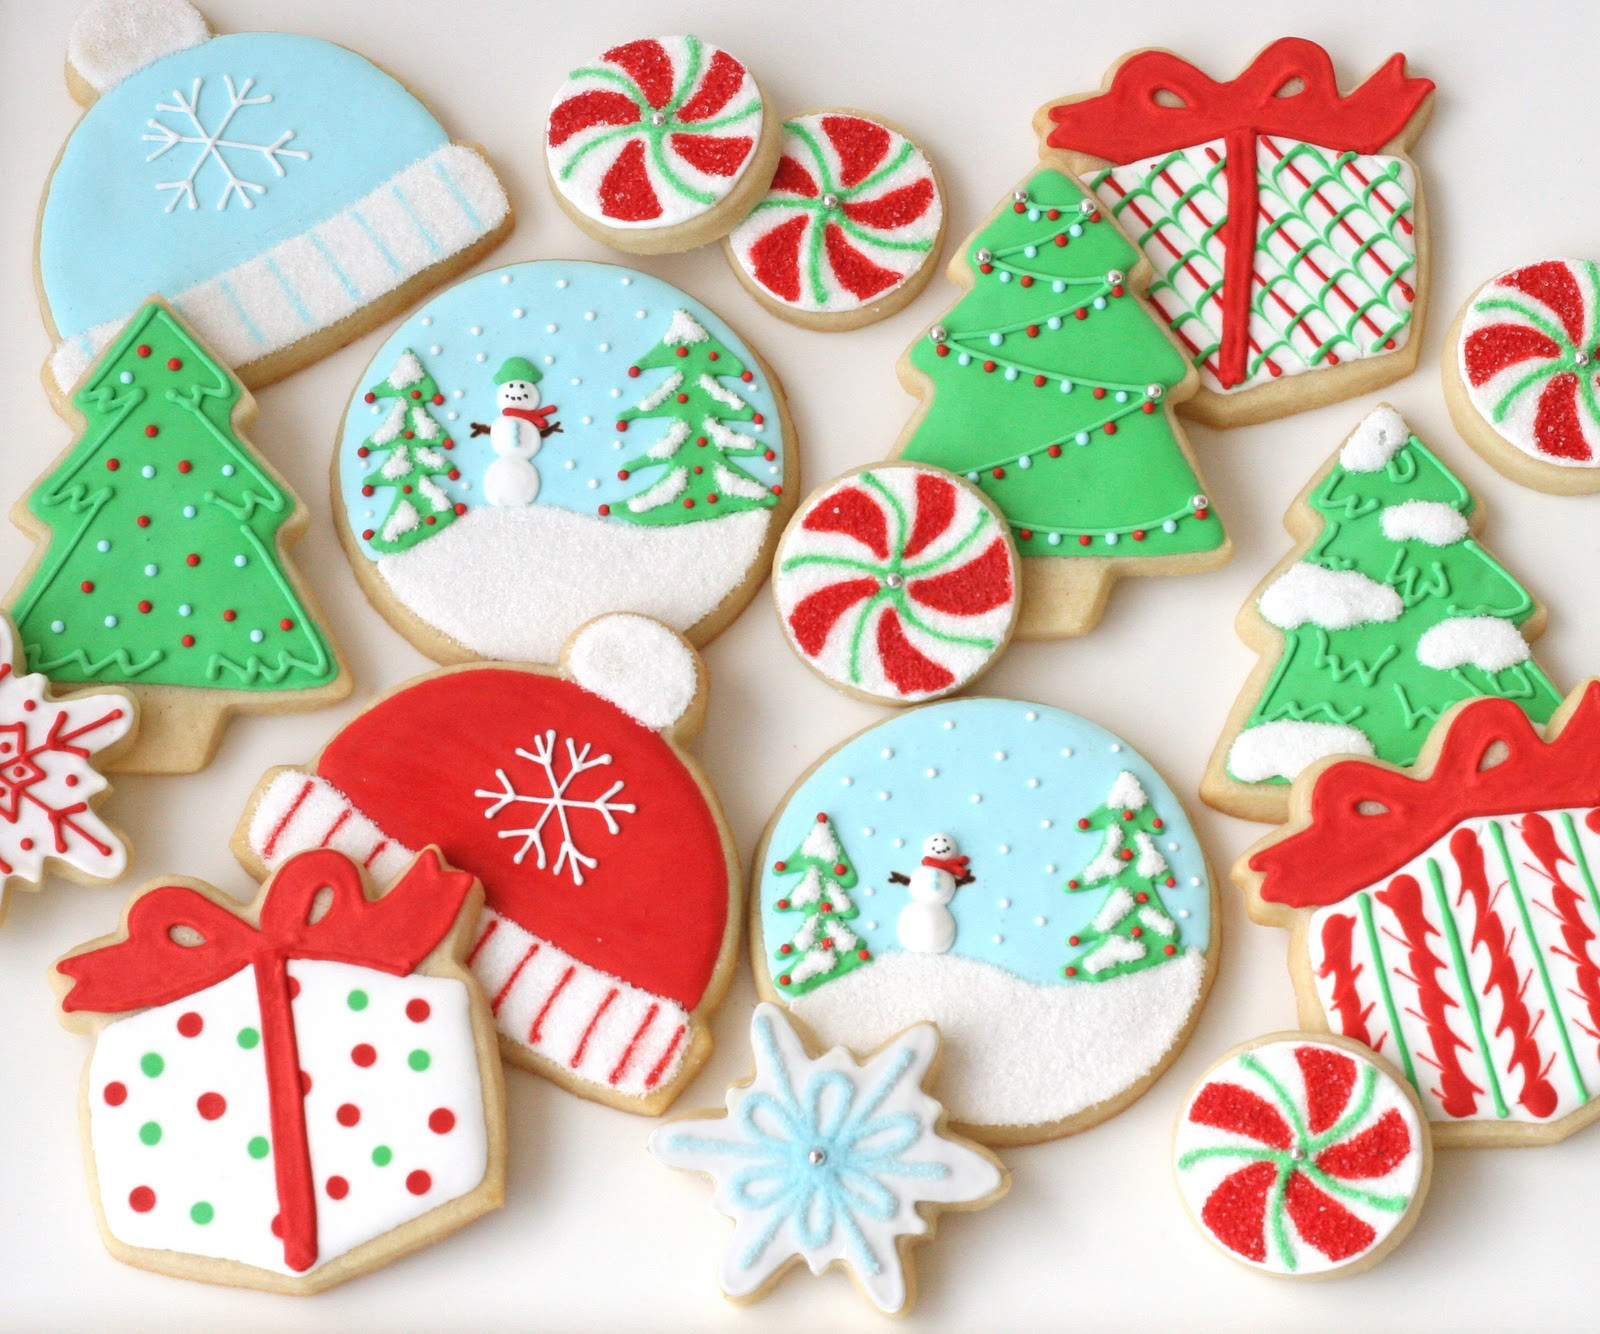 Christmas Sugar Cookie Icing Recipes  Christmas Cookies Galore Glorious Treats